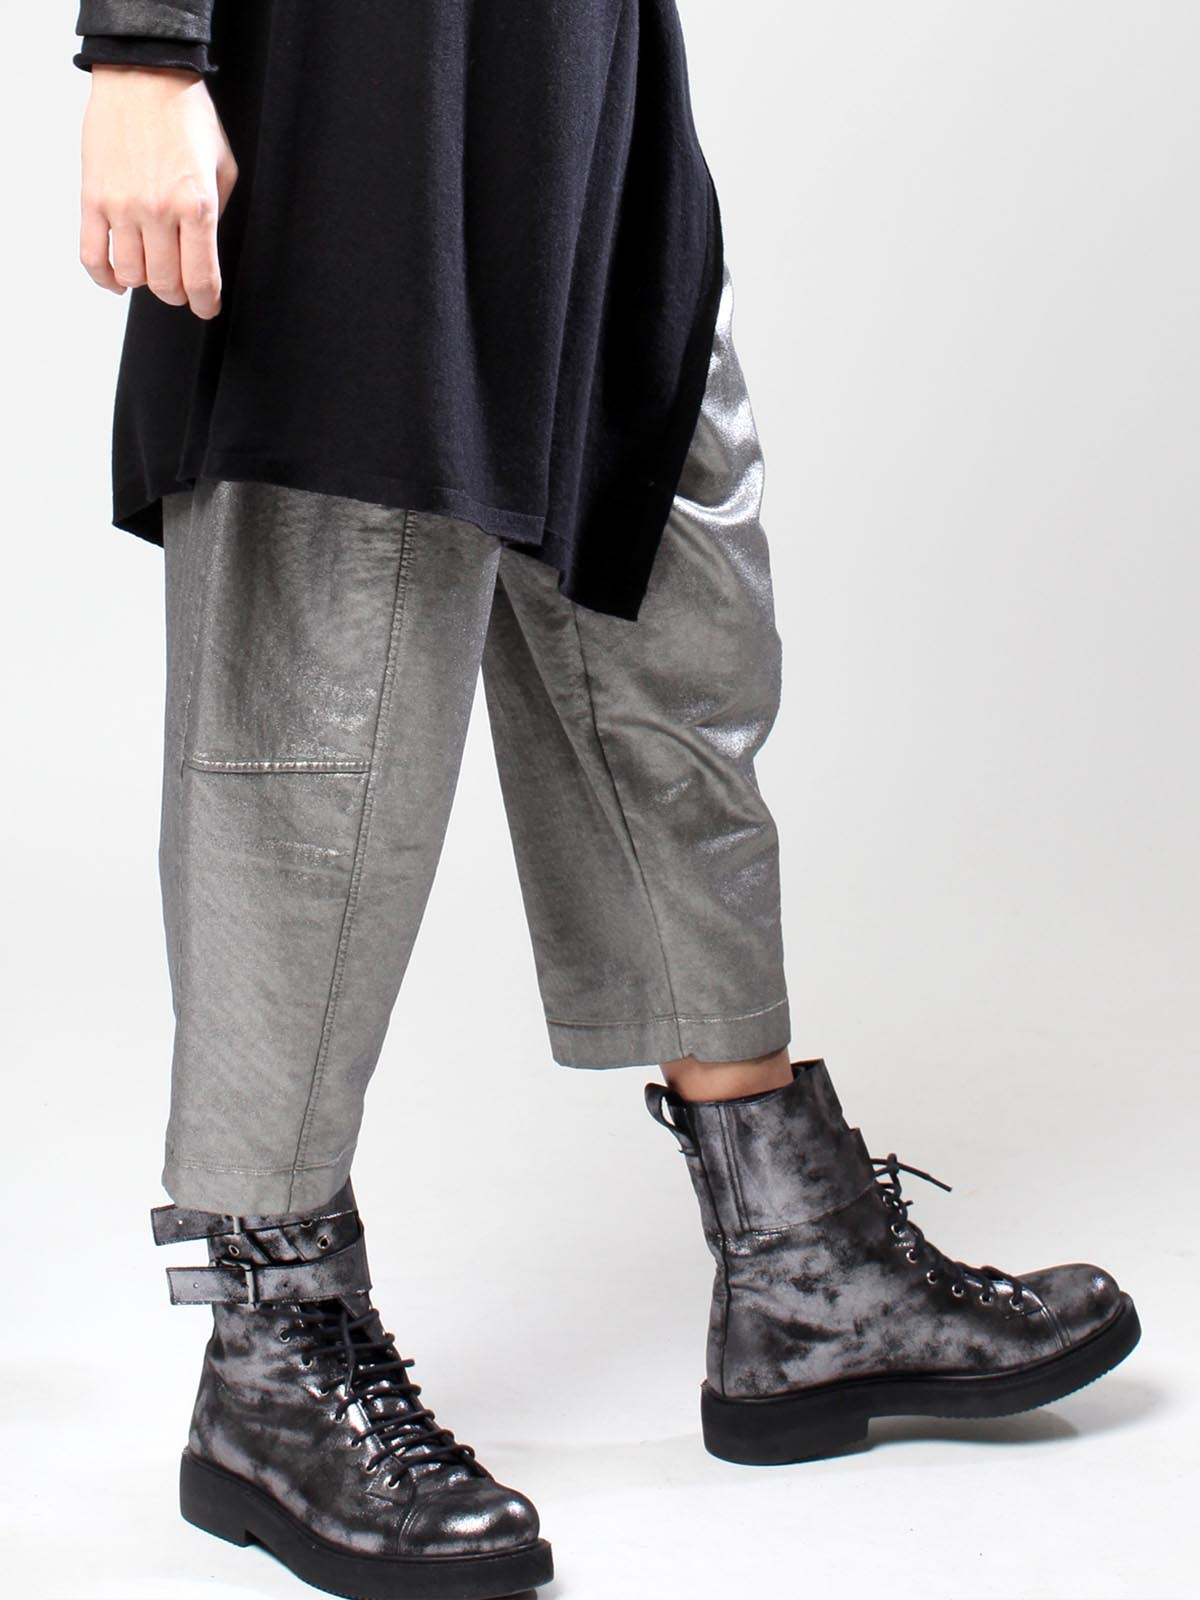 silver shiny trousers and boots at blue womens clothing